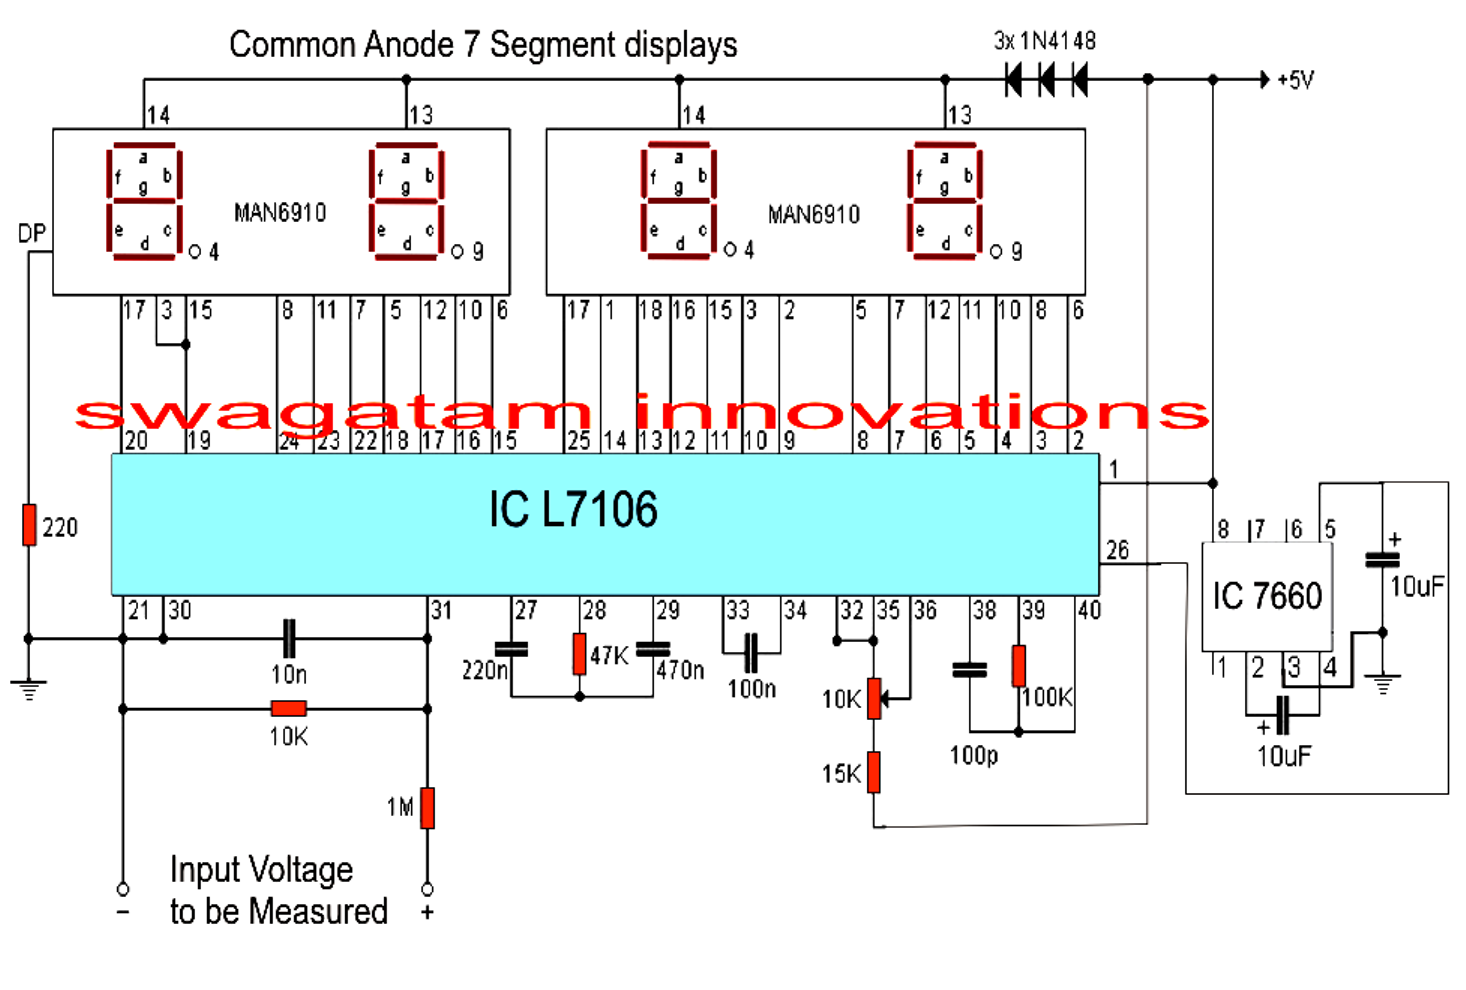 Icl7106 Voltmeter Schematic Automotive Wiring Diagram And Icl7107 3 1 2 Digit Lcd Led Display A D Converters Make This Simple Digital Circuit Using Ic L7107